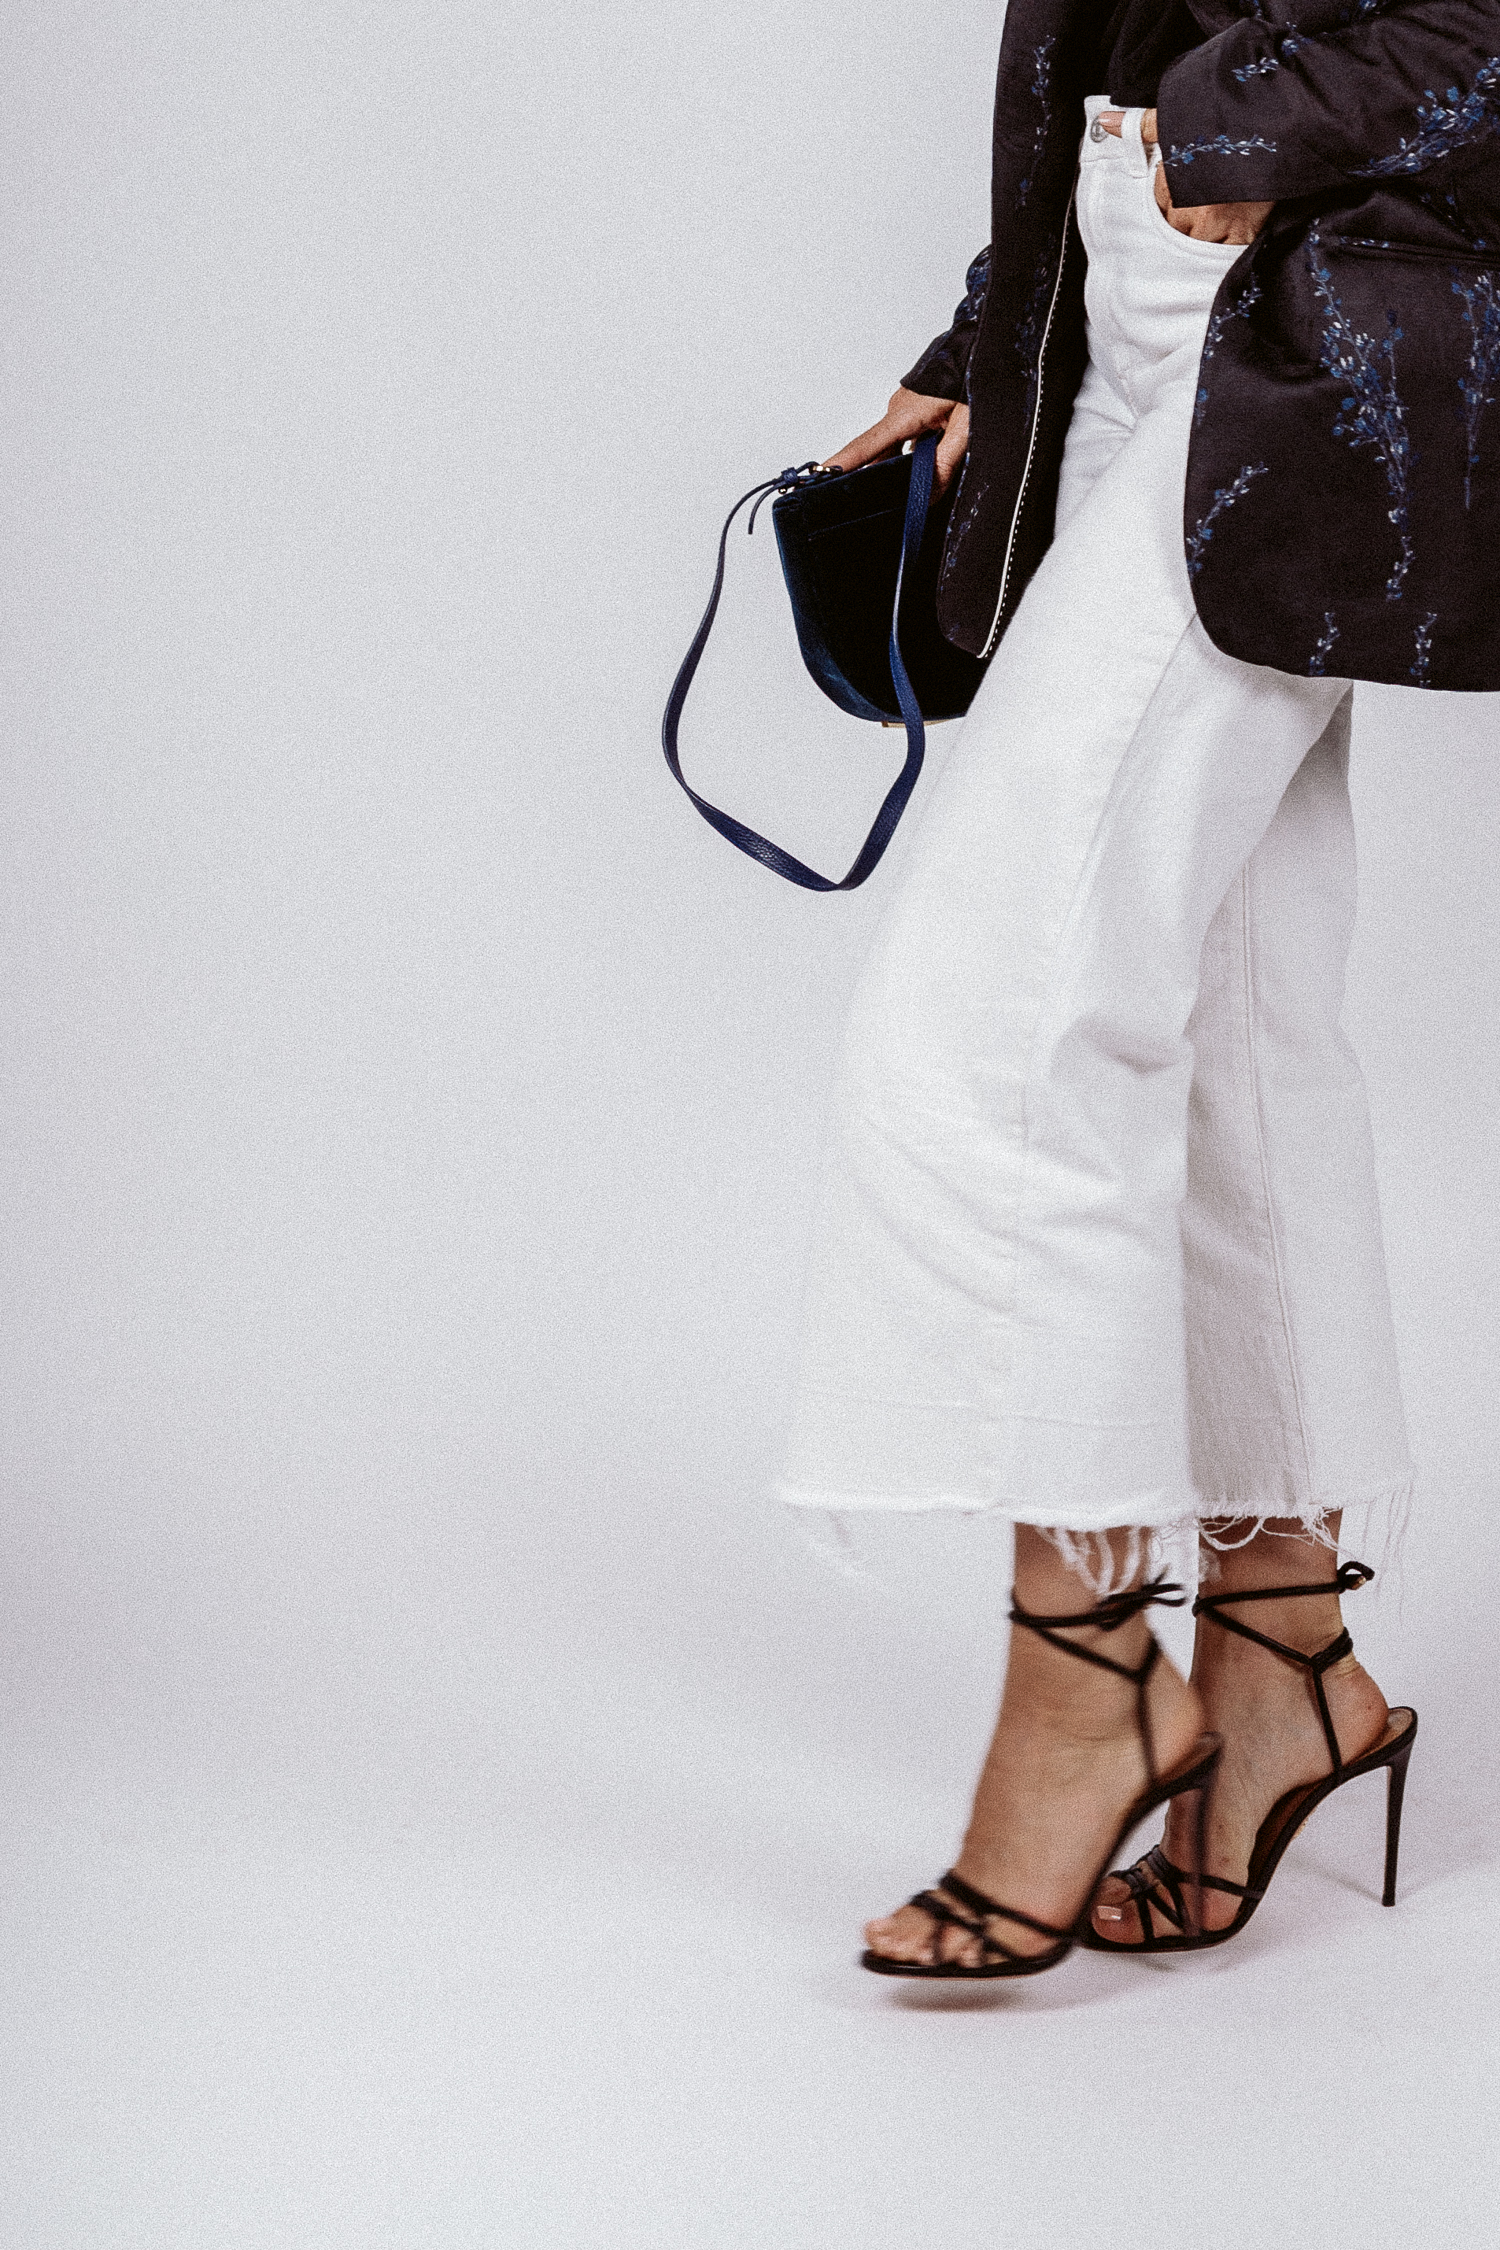 3 ways to wear: Denim Culottes | Love Daily Dose